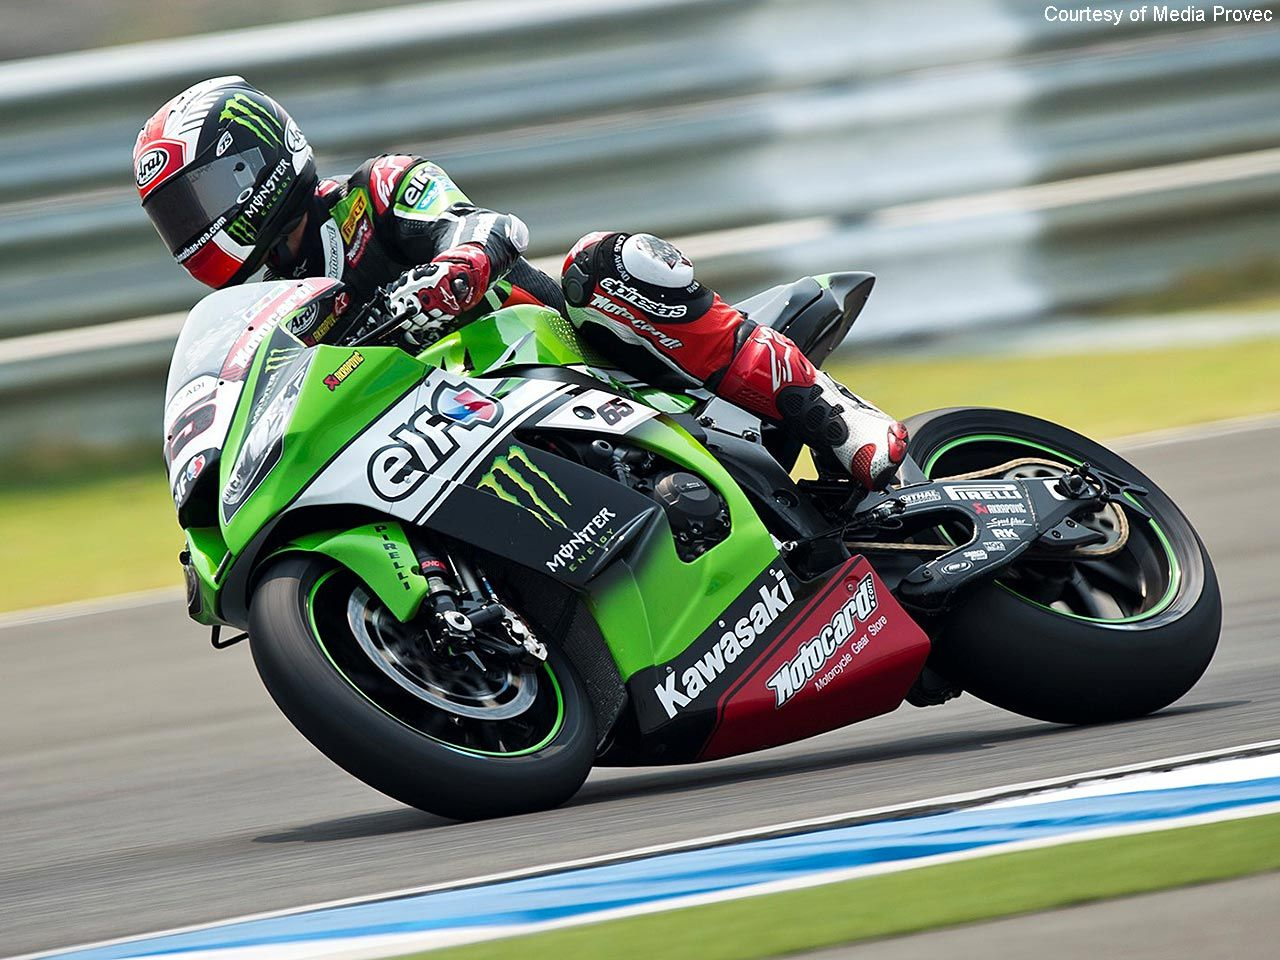 World Superbike Thailand Superpole 2015 - Product Reviews - Motorcycle Sport Forum